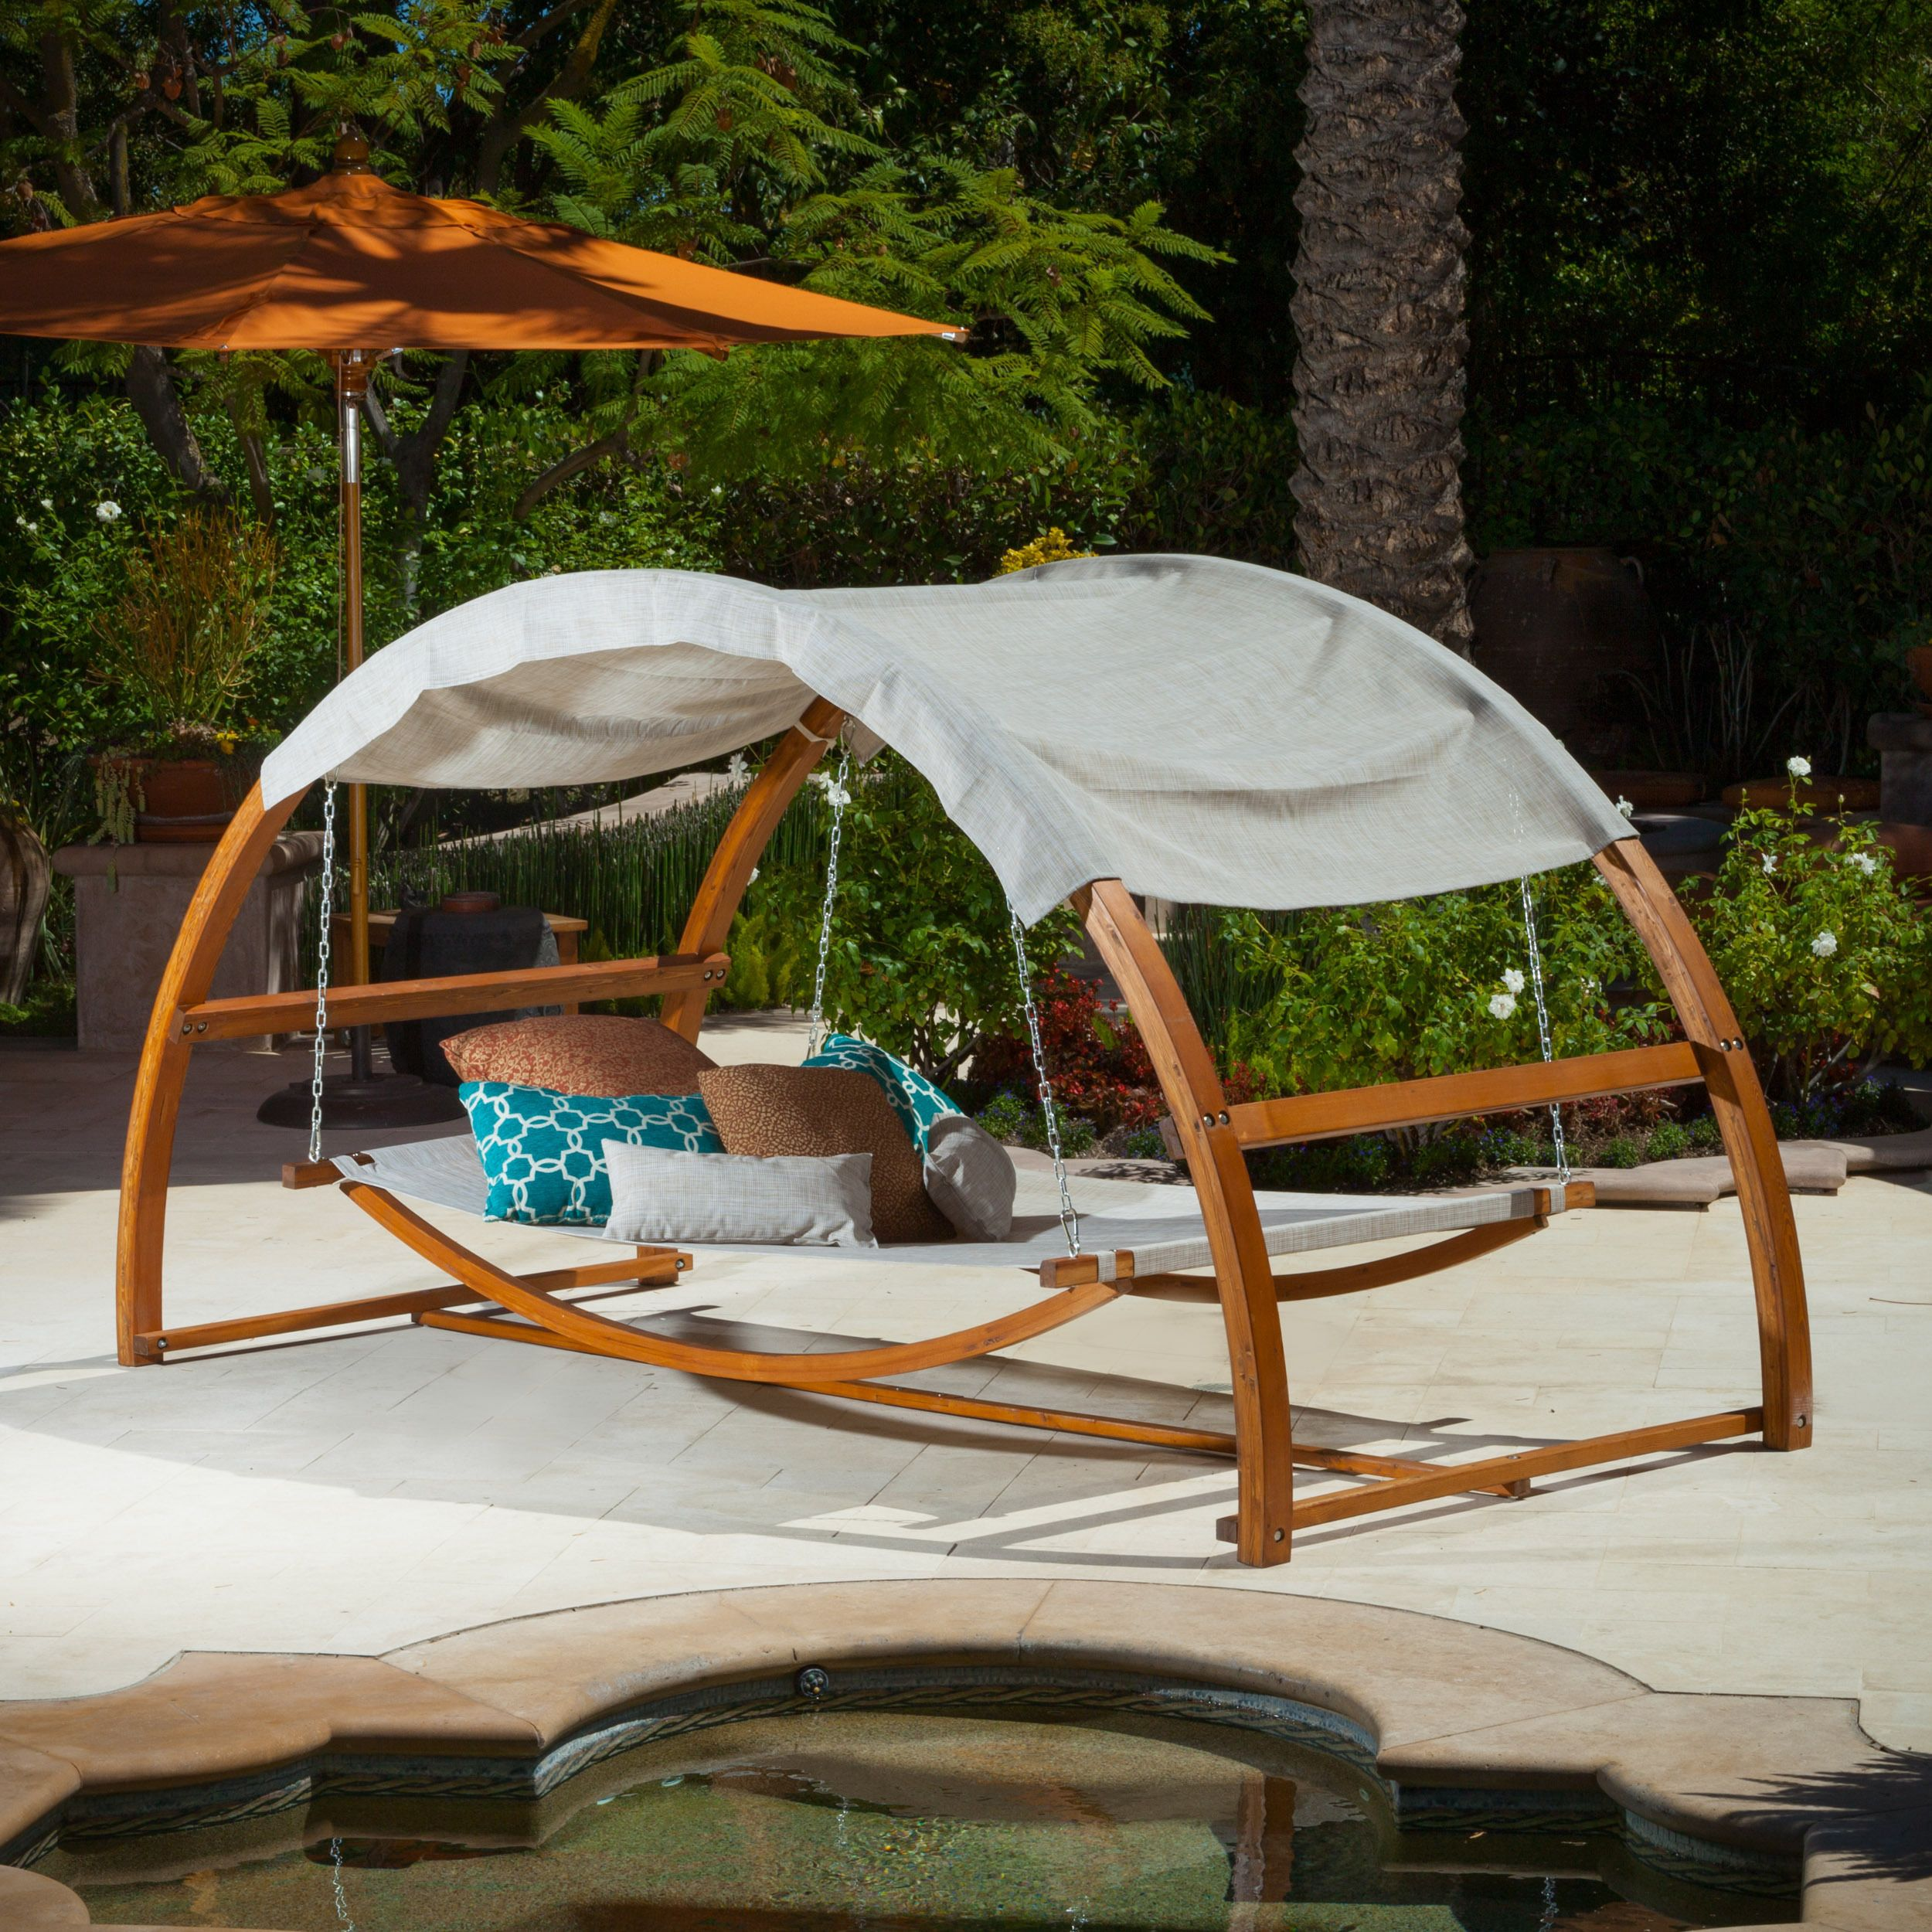 The Tonga Hanging Swing Bed With Canopy Is A Perfect Relaxation Getaway And Can Be As Close As